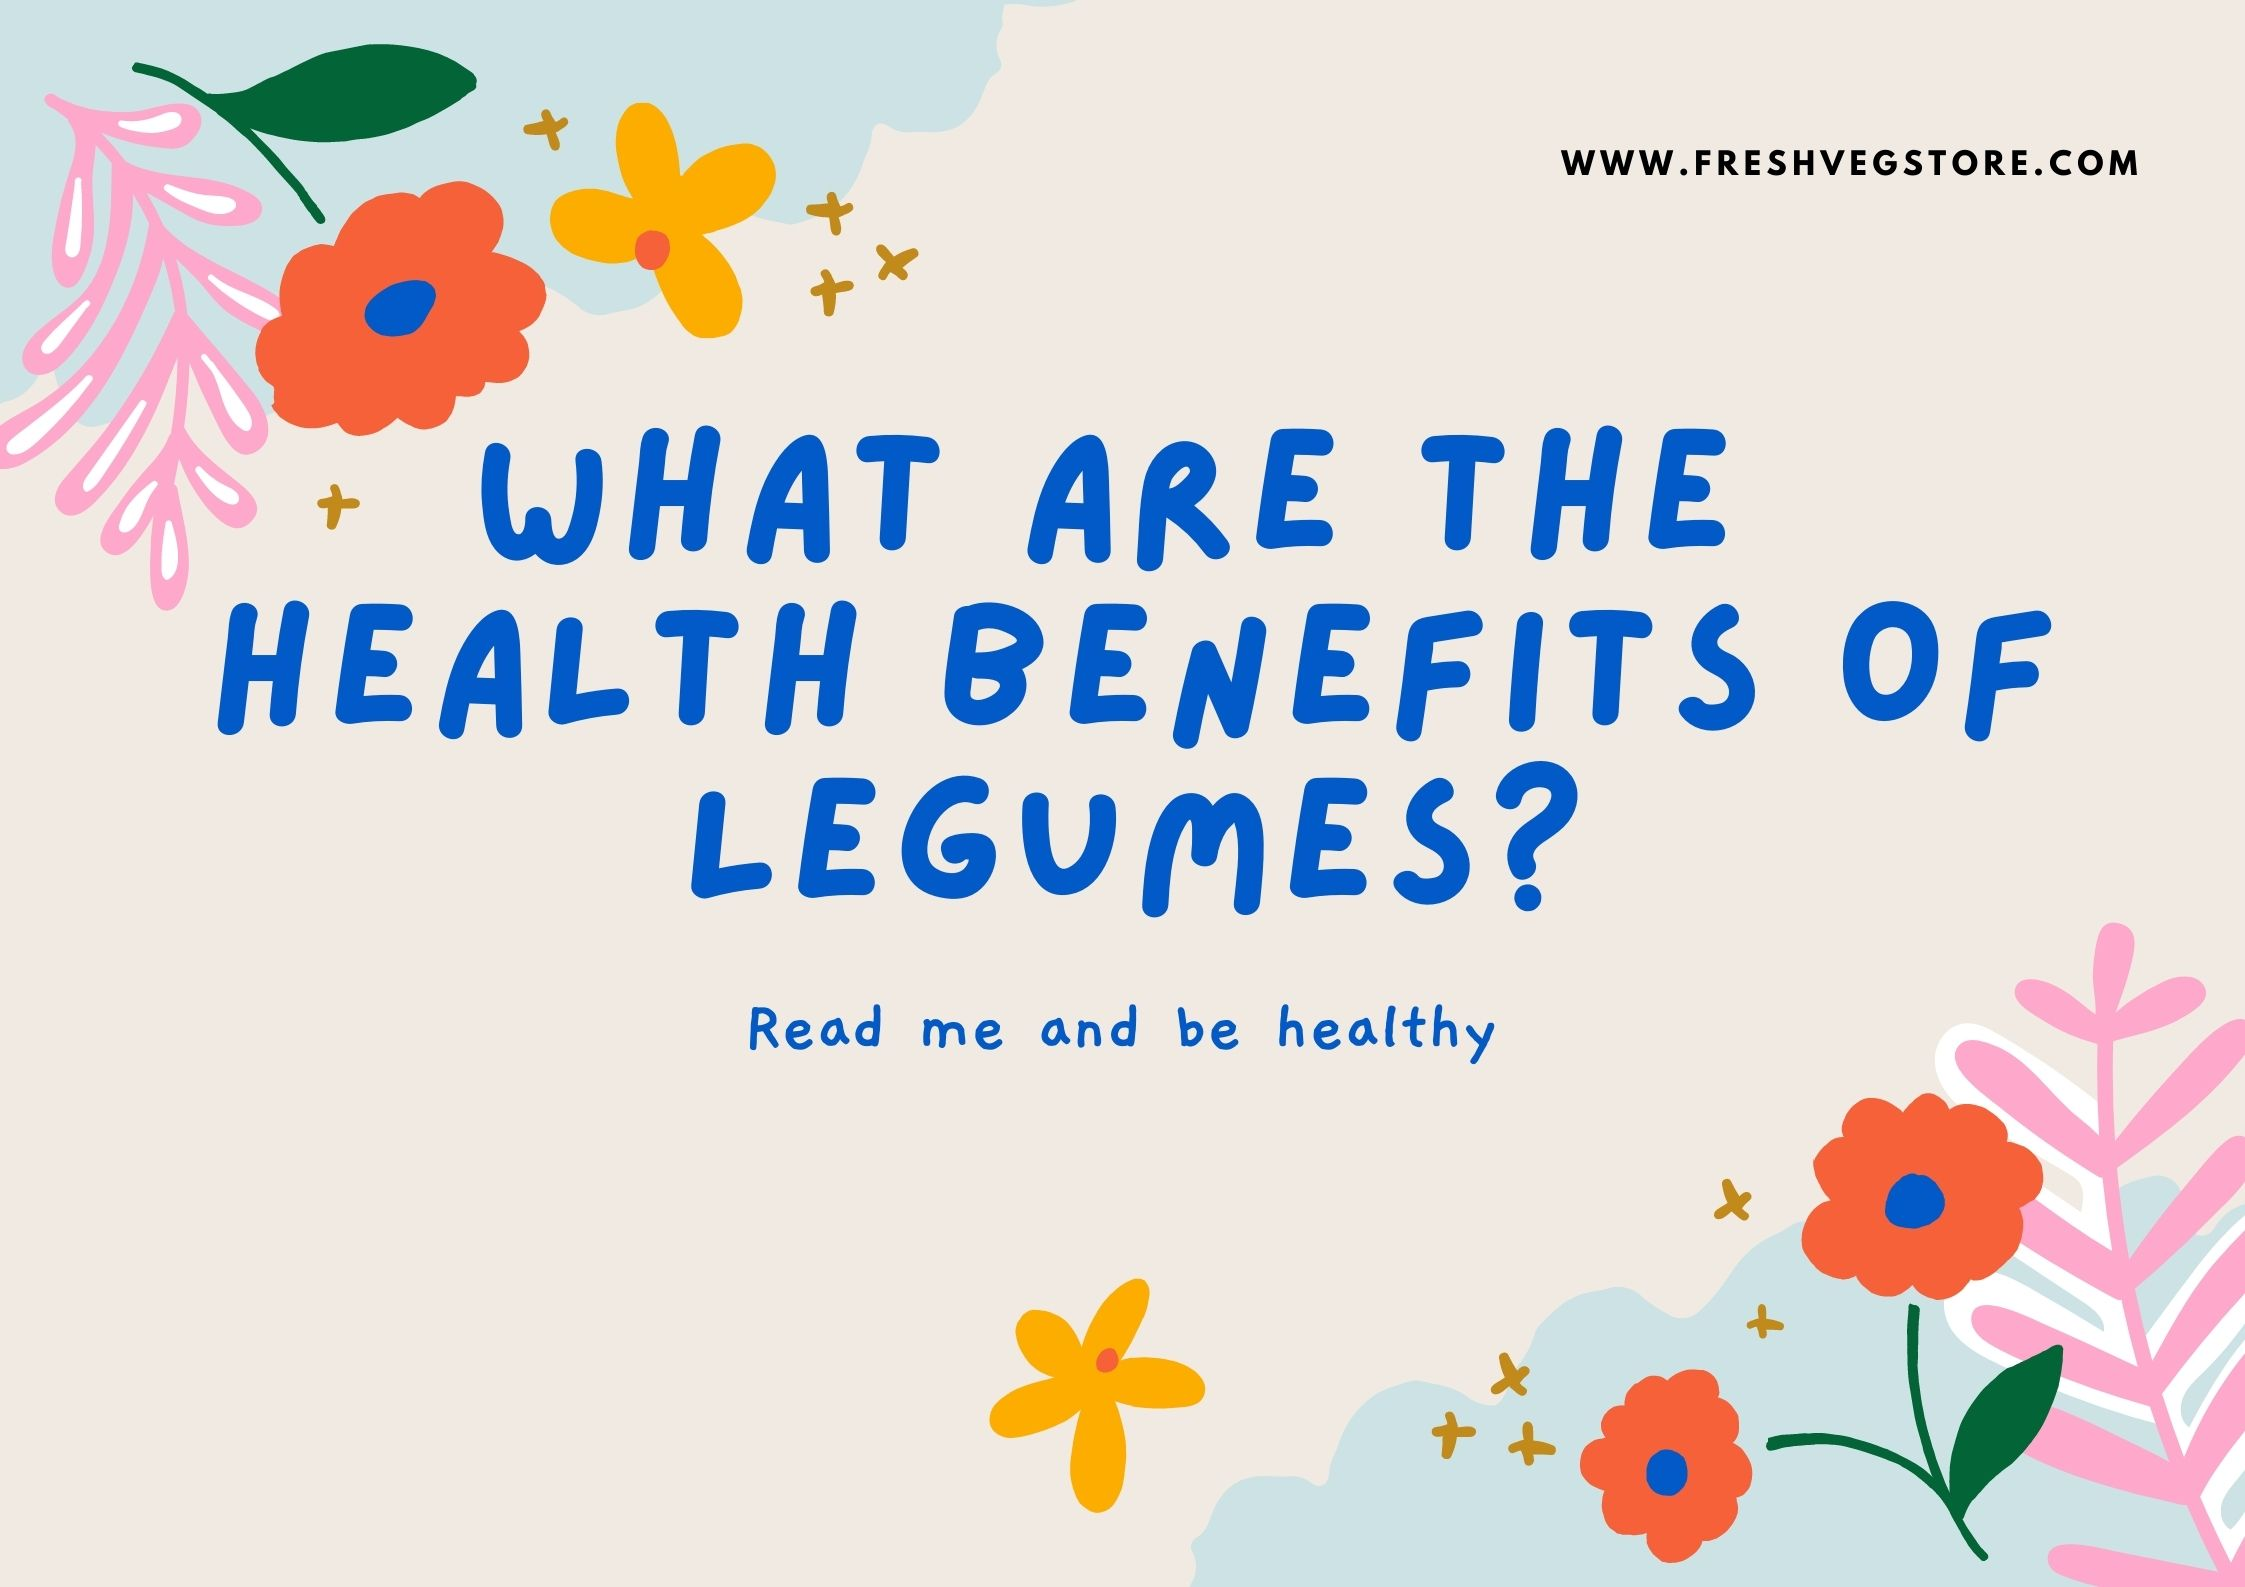 WHAT ARE THE HEALTH BENEFITS OF LEGUMES?